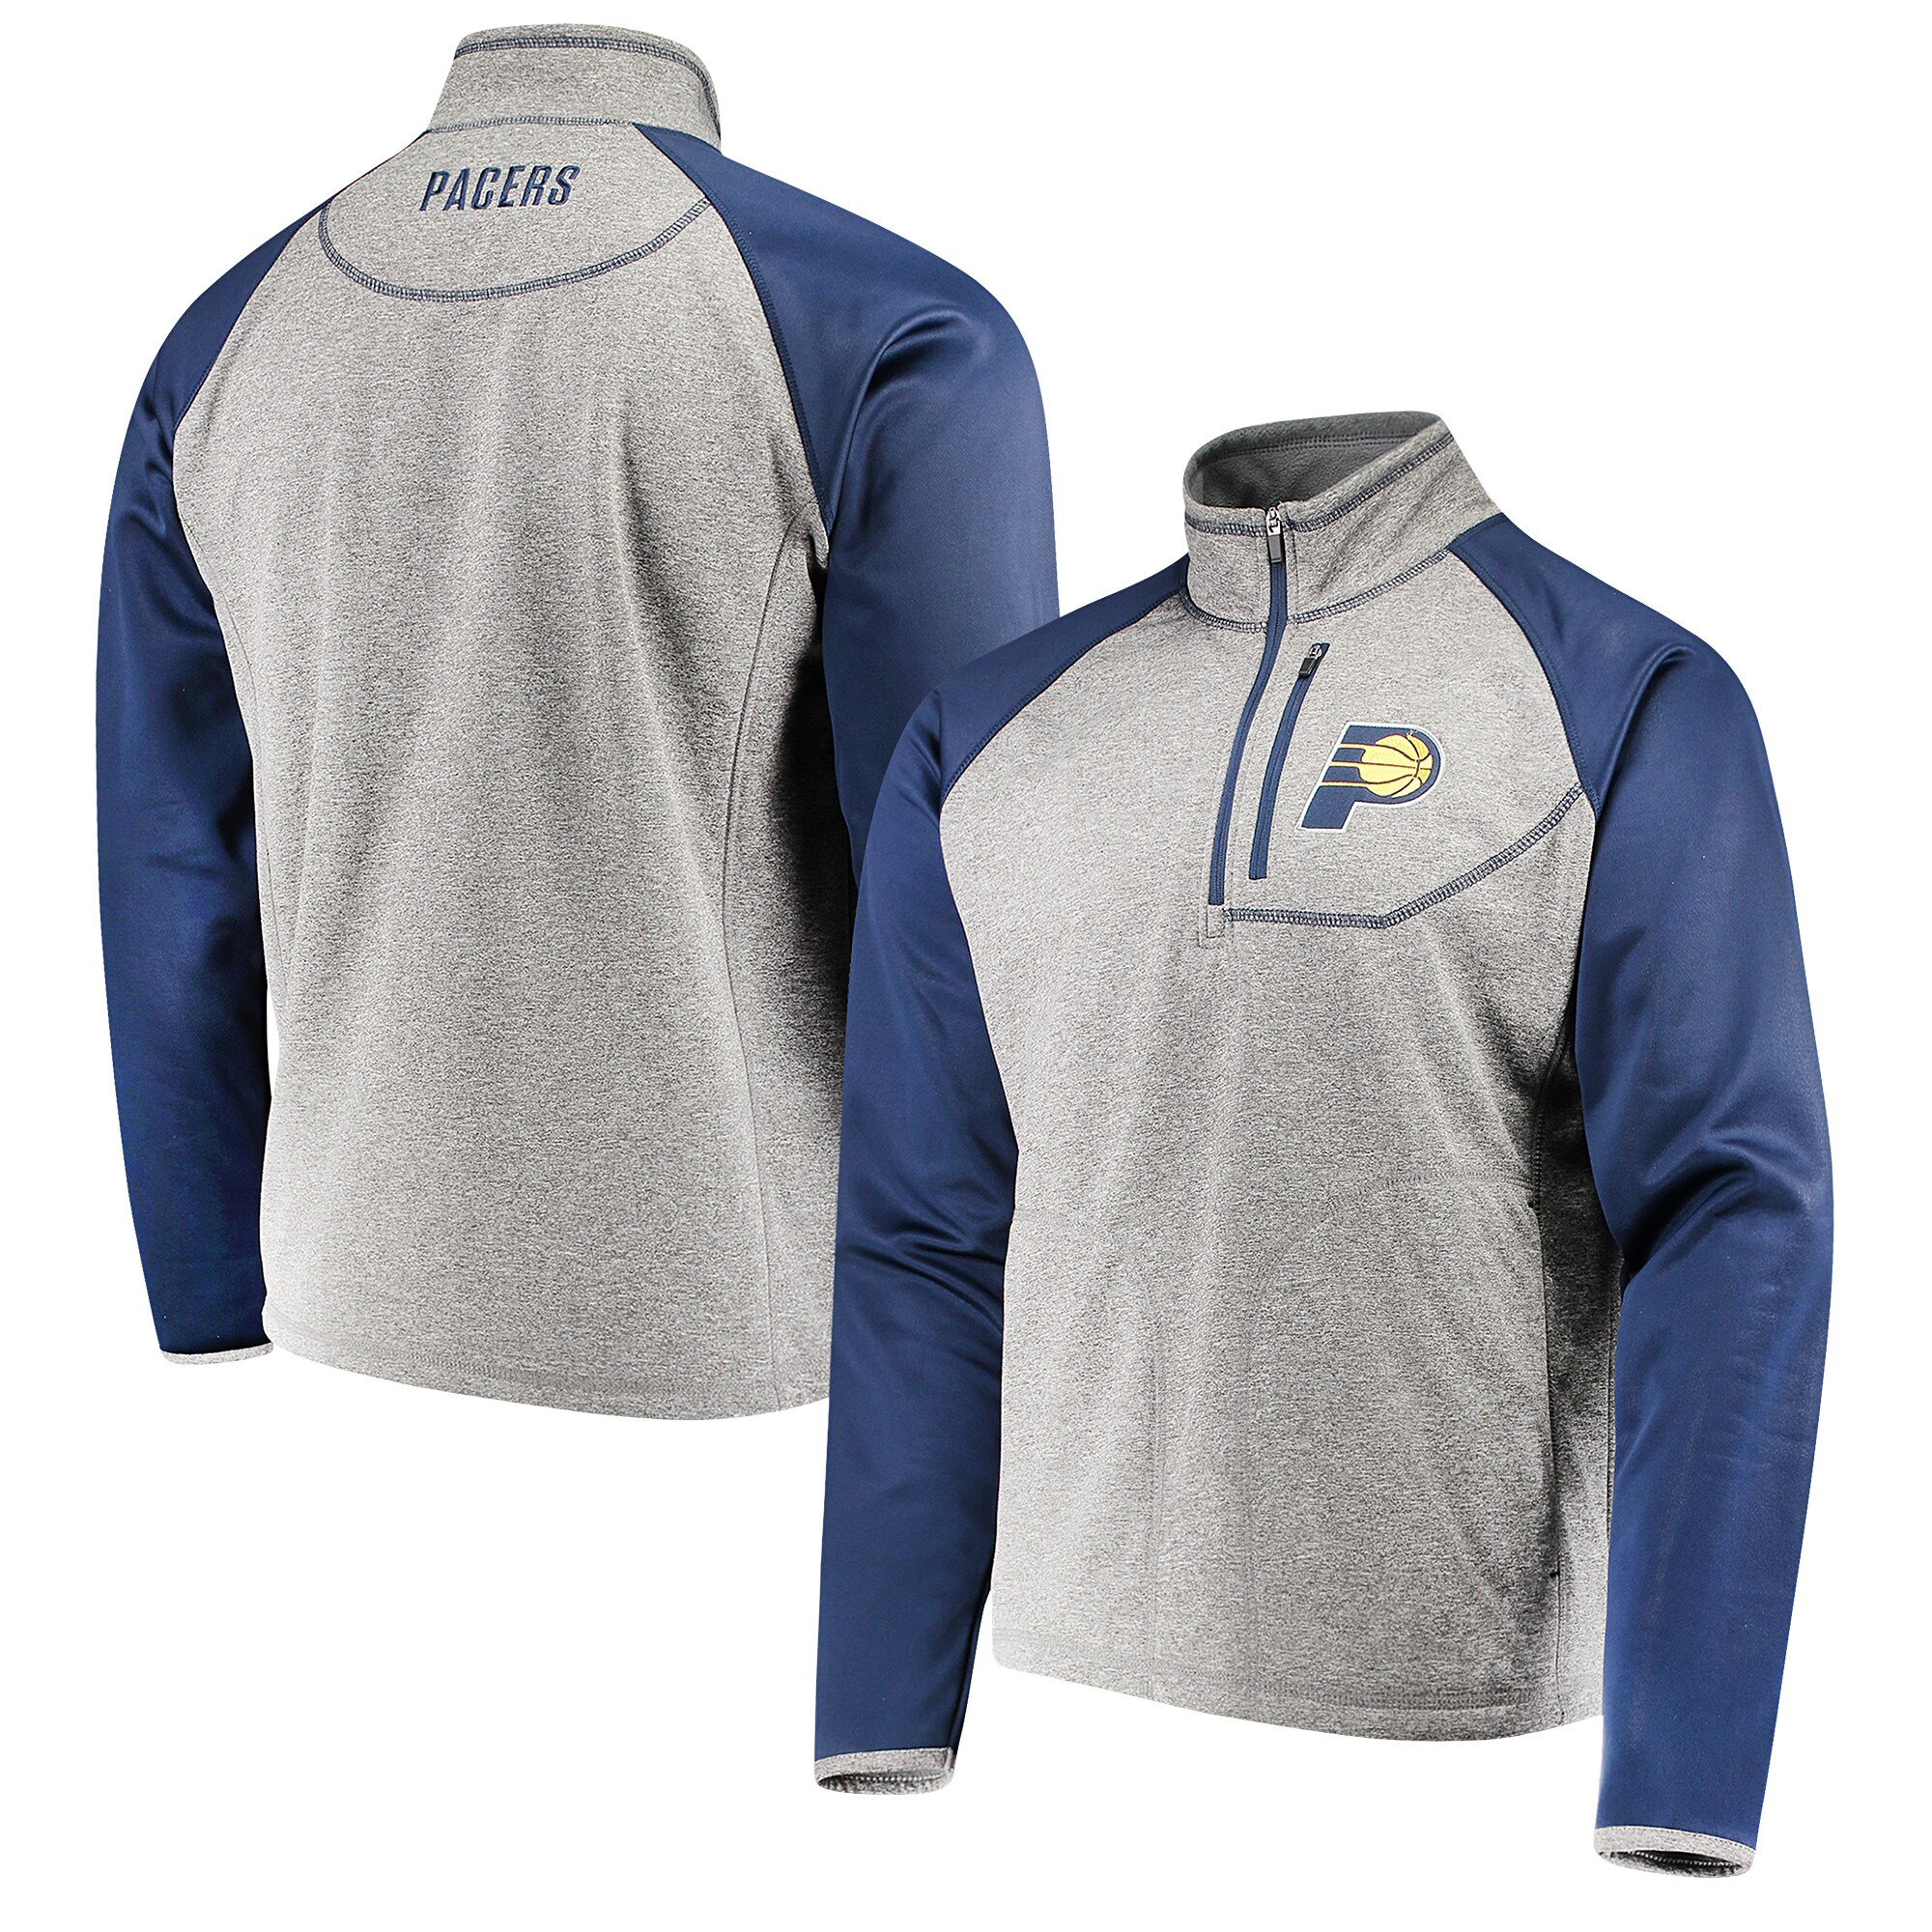 Indiana Pacers G-III Sports by Carl Banks Mountain Trail Half-Zip Pullover Jacket - Gray/Navy